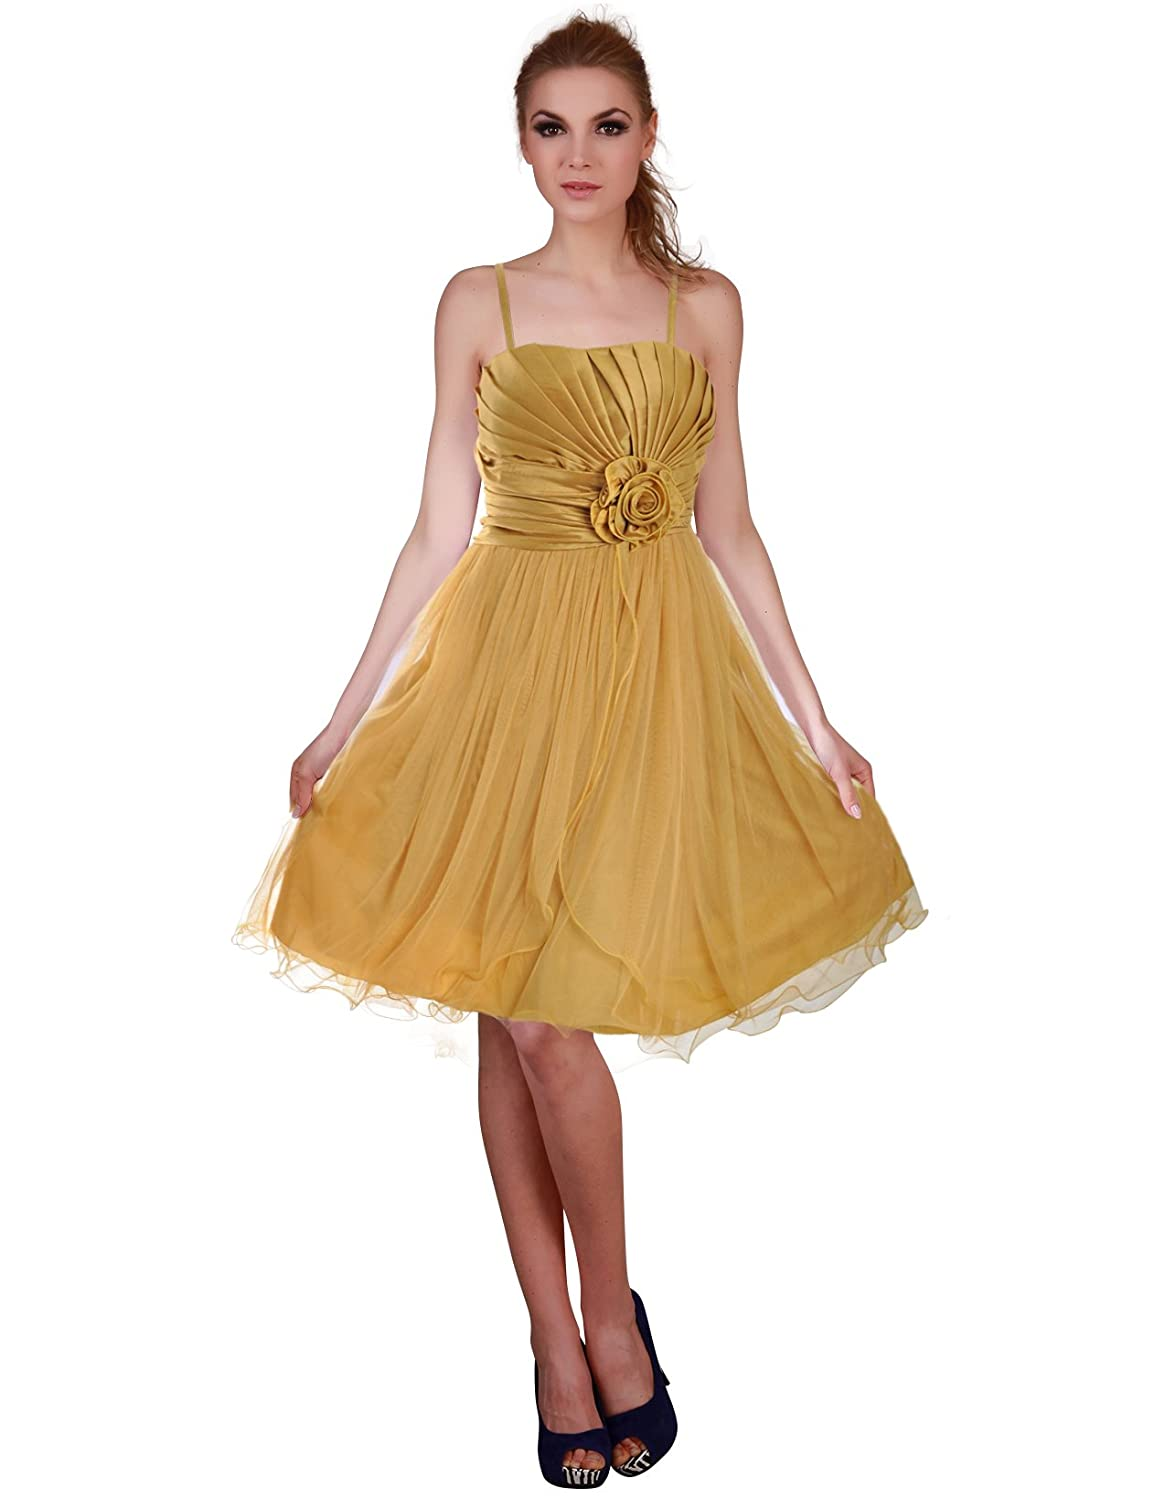 Donna Bella Split Tiered Prom Short Cocktail Bridesmaid Dress - Colour: Gold, Size: 10: Amazon.co.uk: Clothing